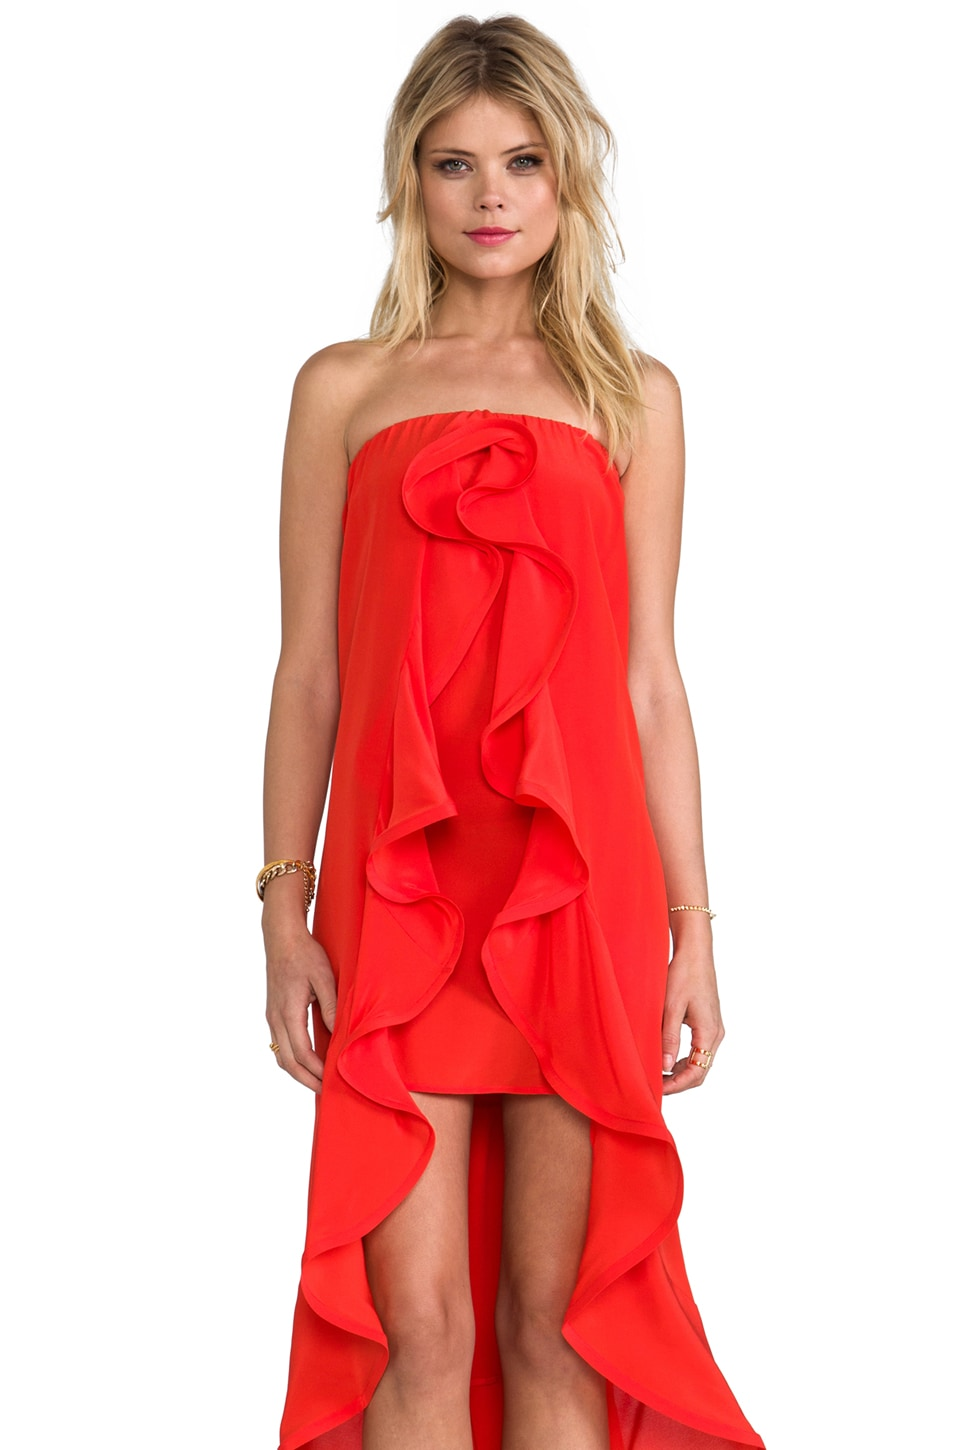 Alexis Musa Dress With Ruffles in Red Orange